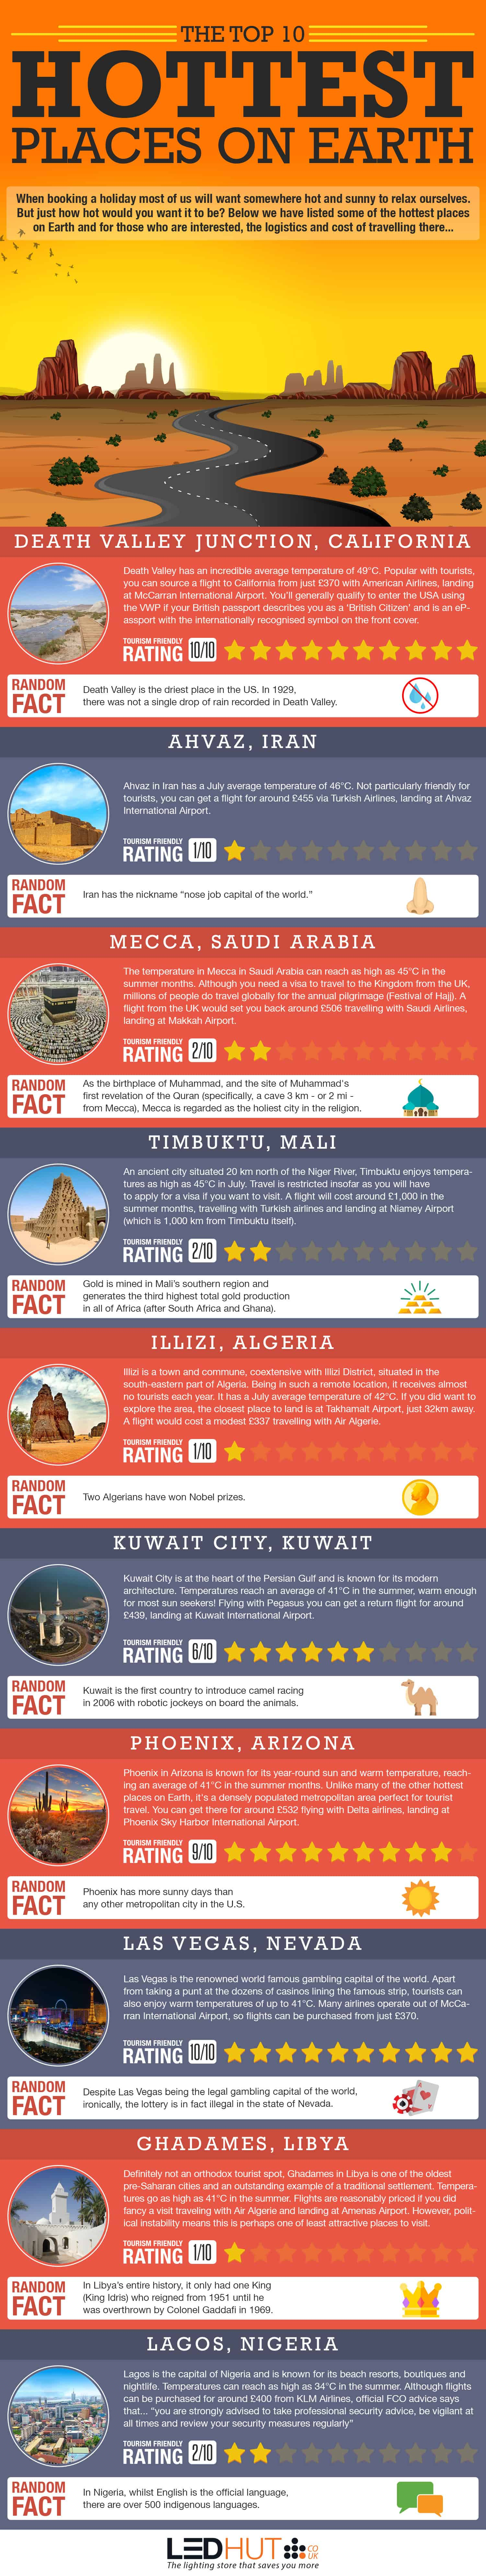 Hottest Places Infographic